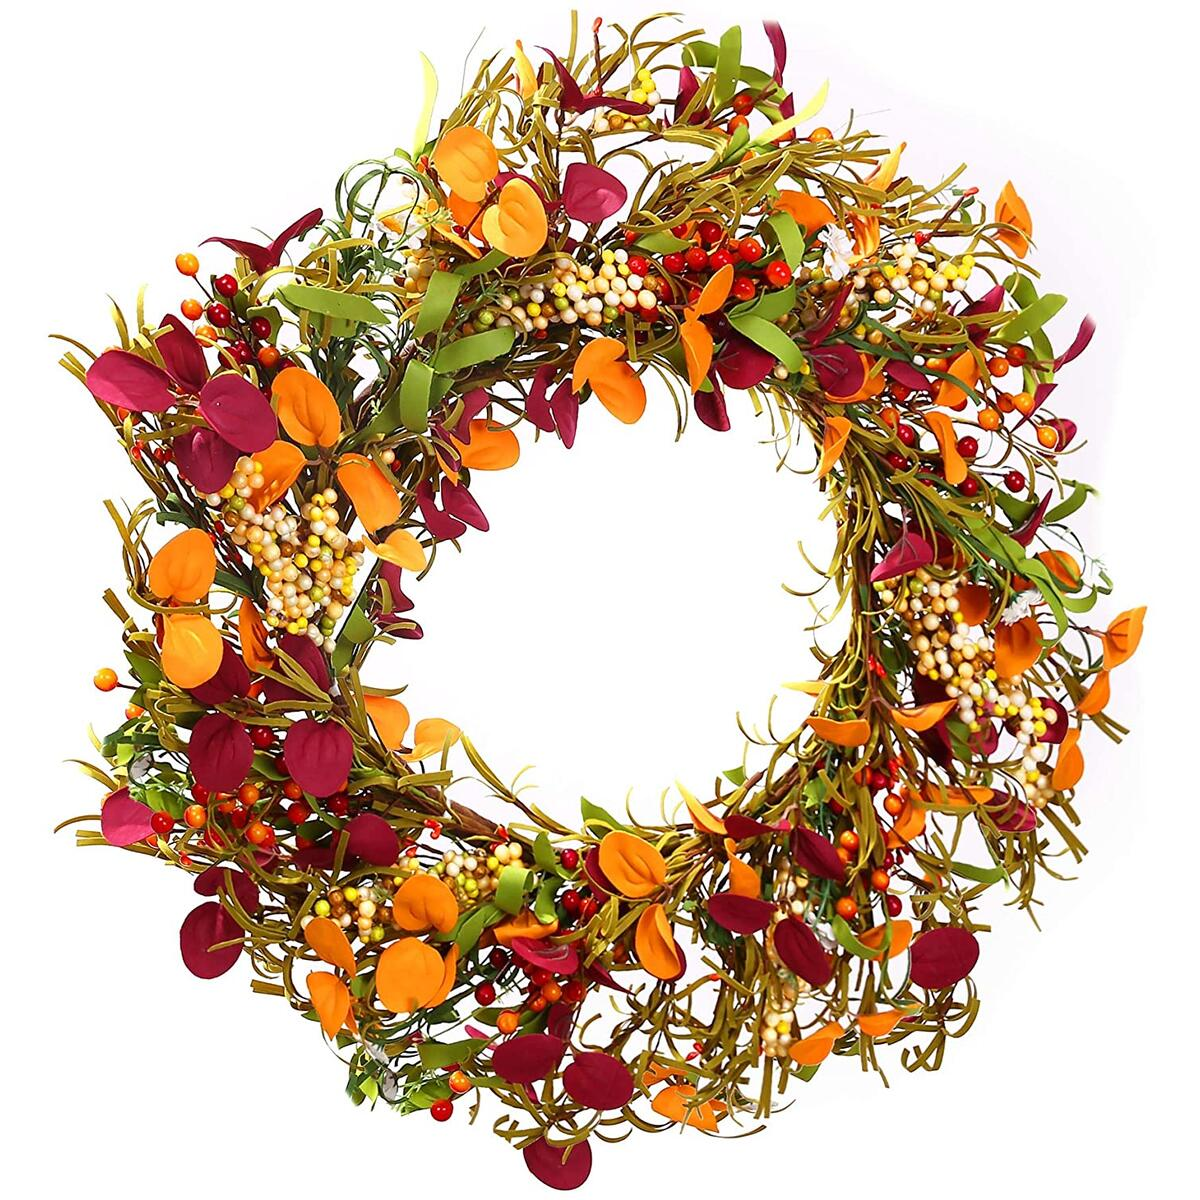 Fall Decor Door Wreath - Sunnysdady 16inch Autumn Farmhouse Wreaths for Front Door Decorations